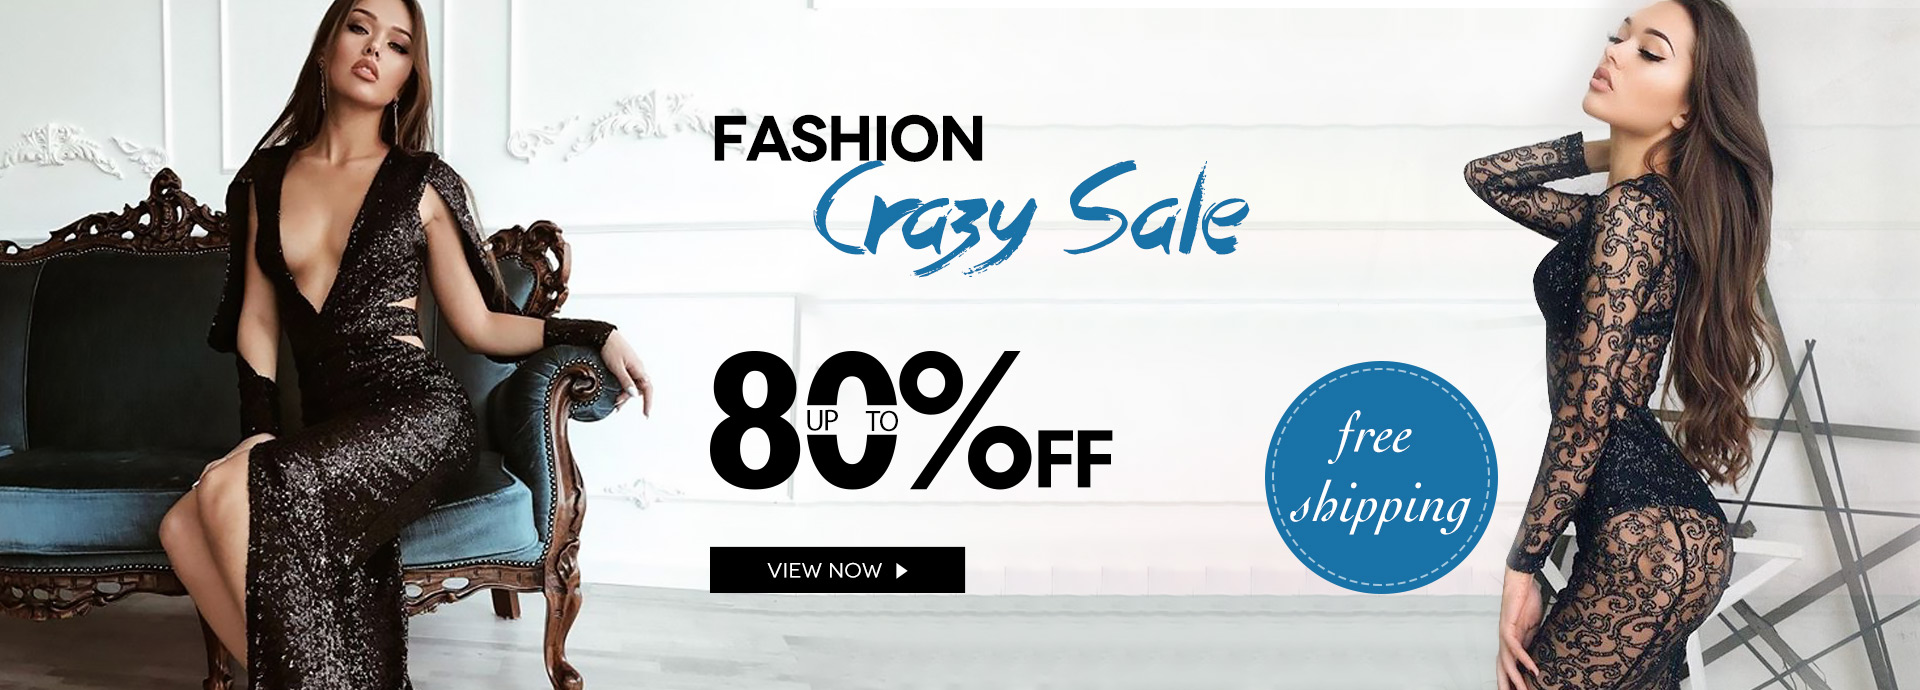 Fashion Crazy Sale